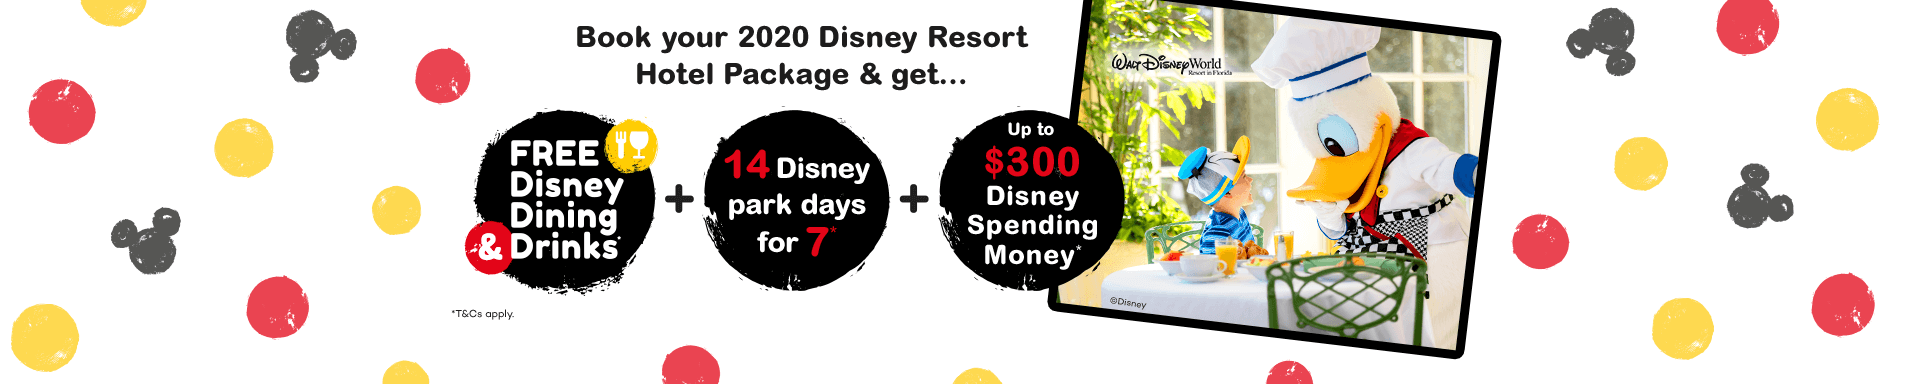 Disney Dining and Drinks (Home Page)